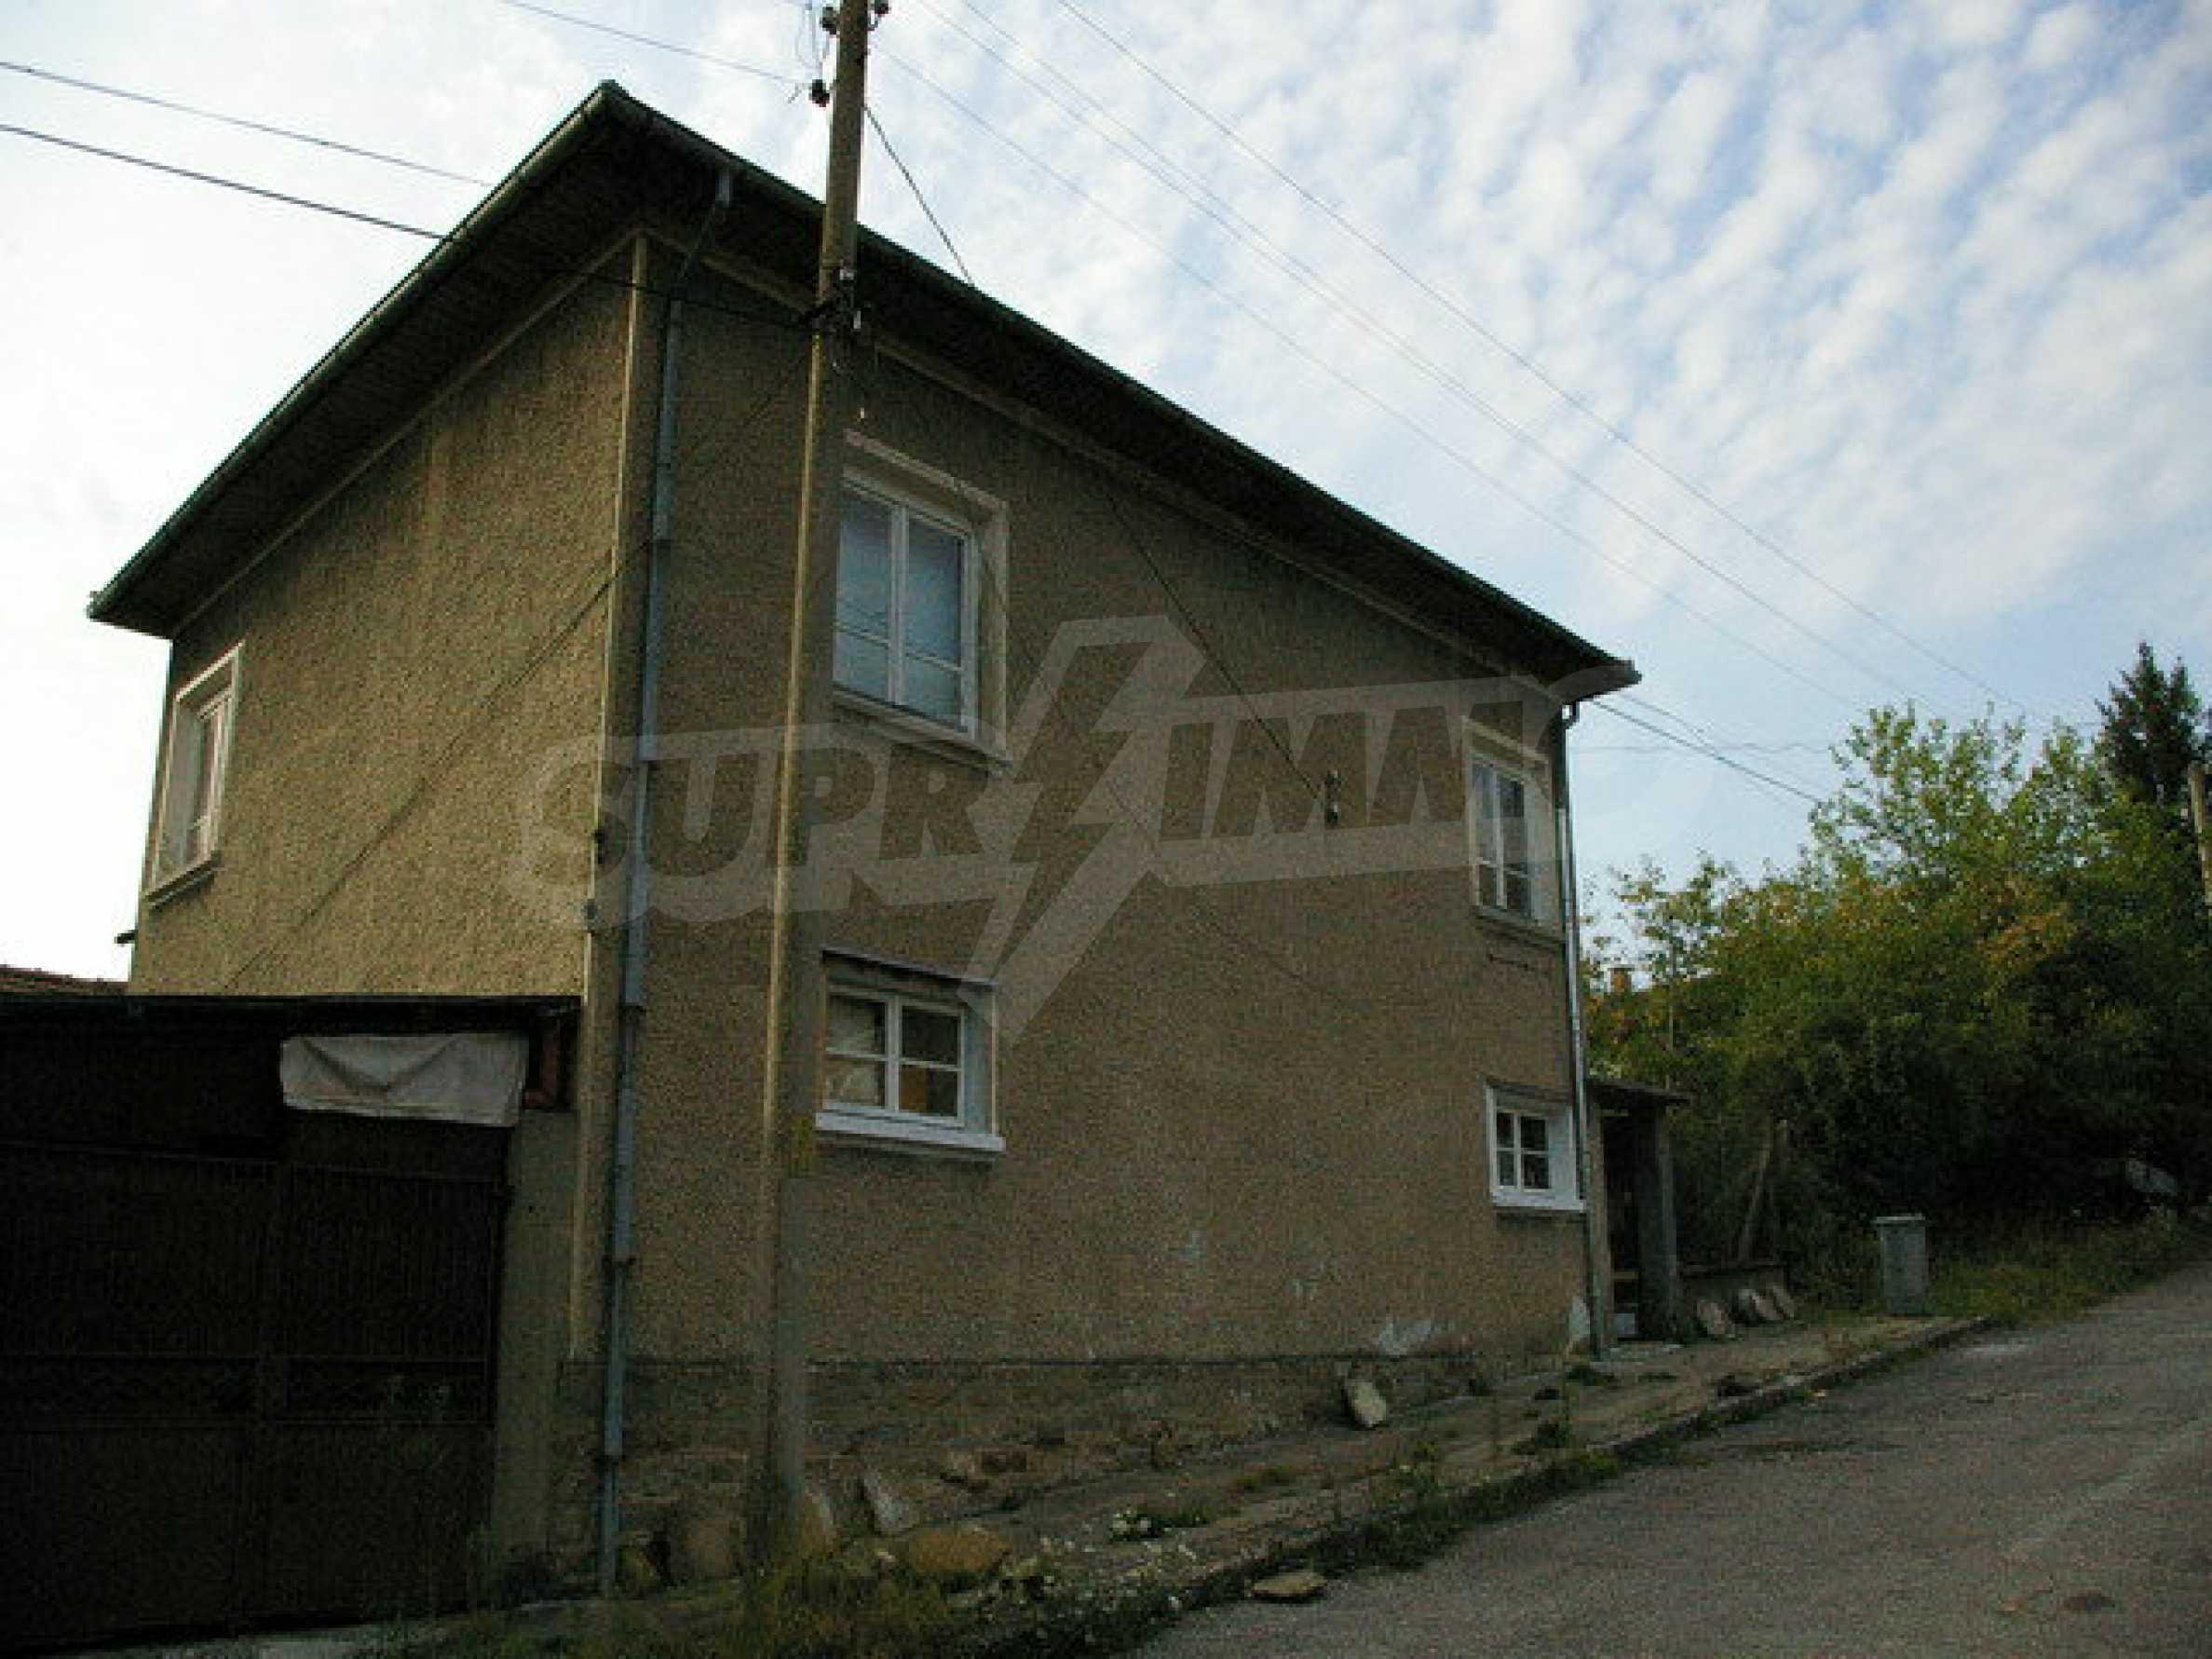 Spacious house with garage in an area with beautiful scenery